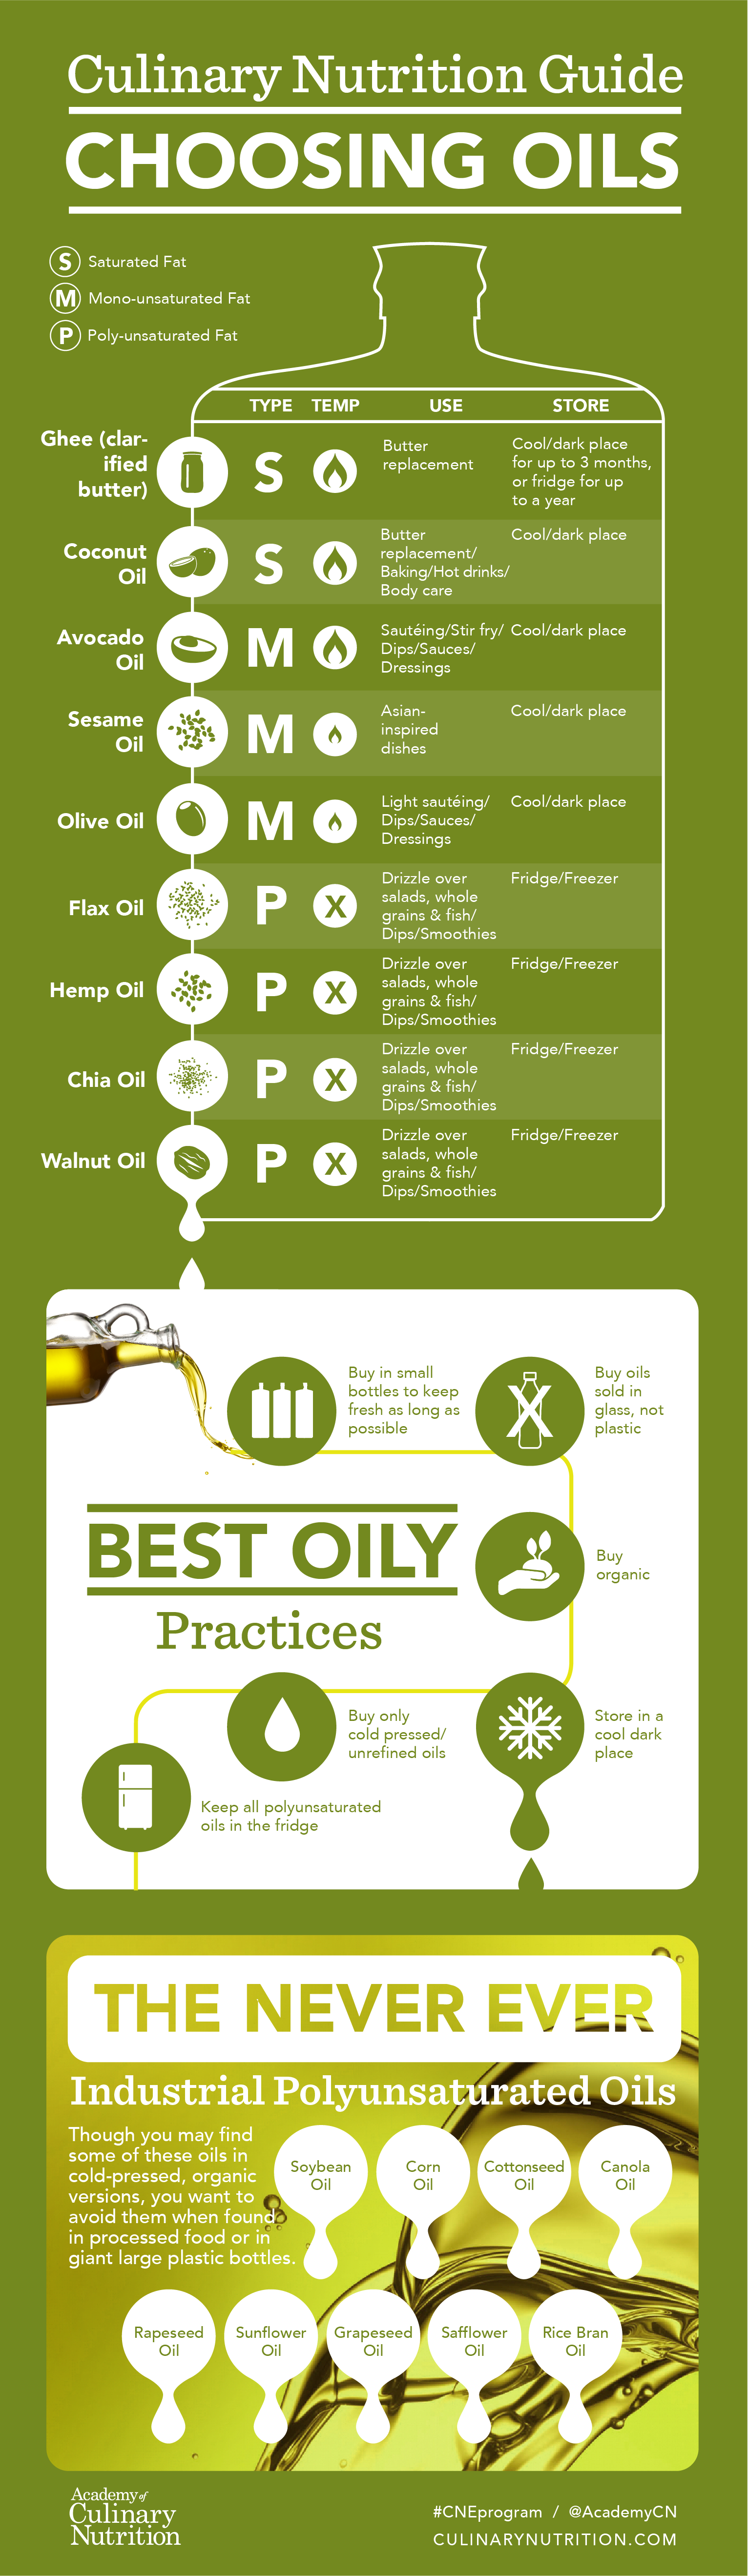 How to Choose Healthy Cooking Oils